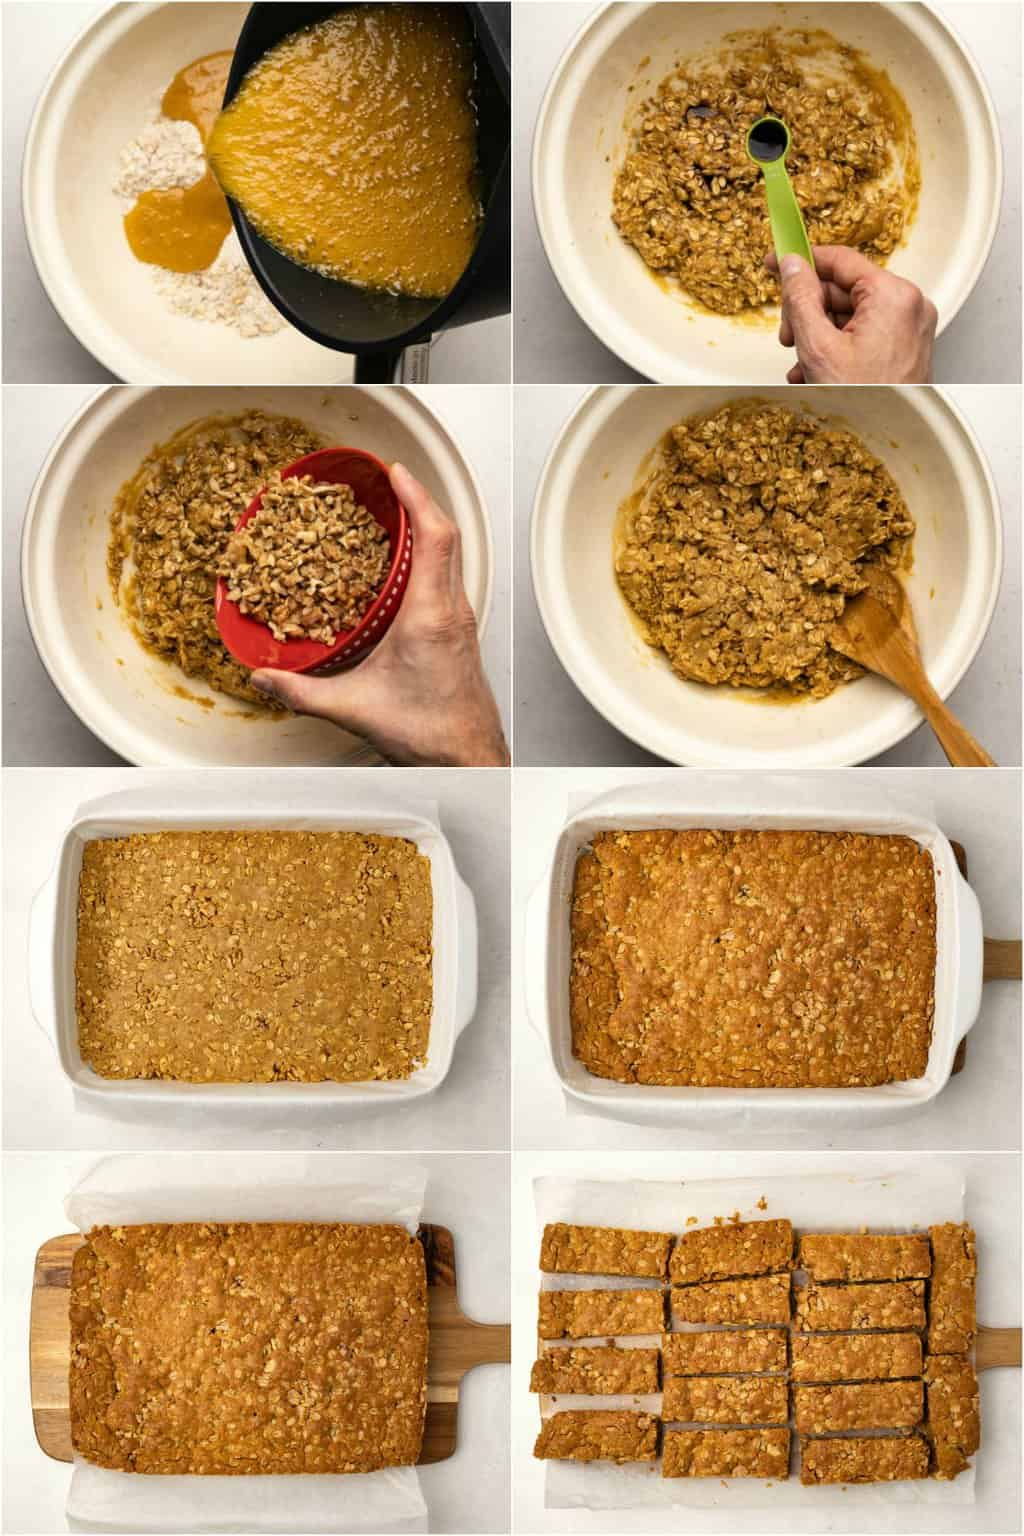 Step by step process photo collage of making oatmeal bars.